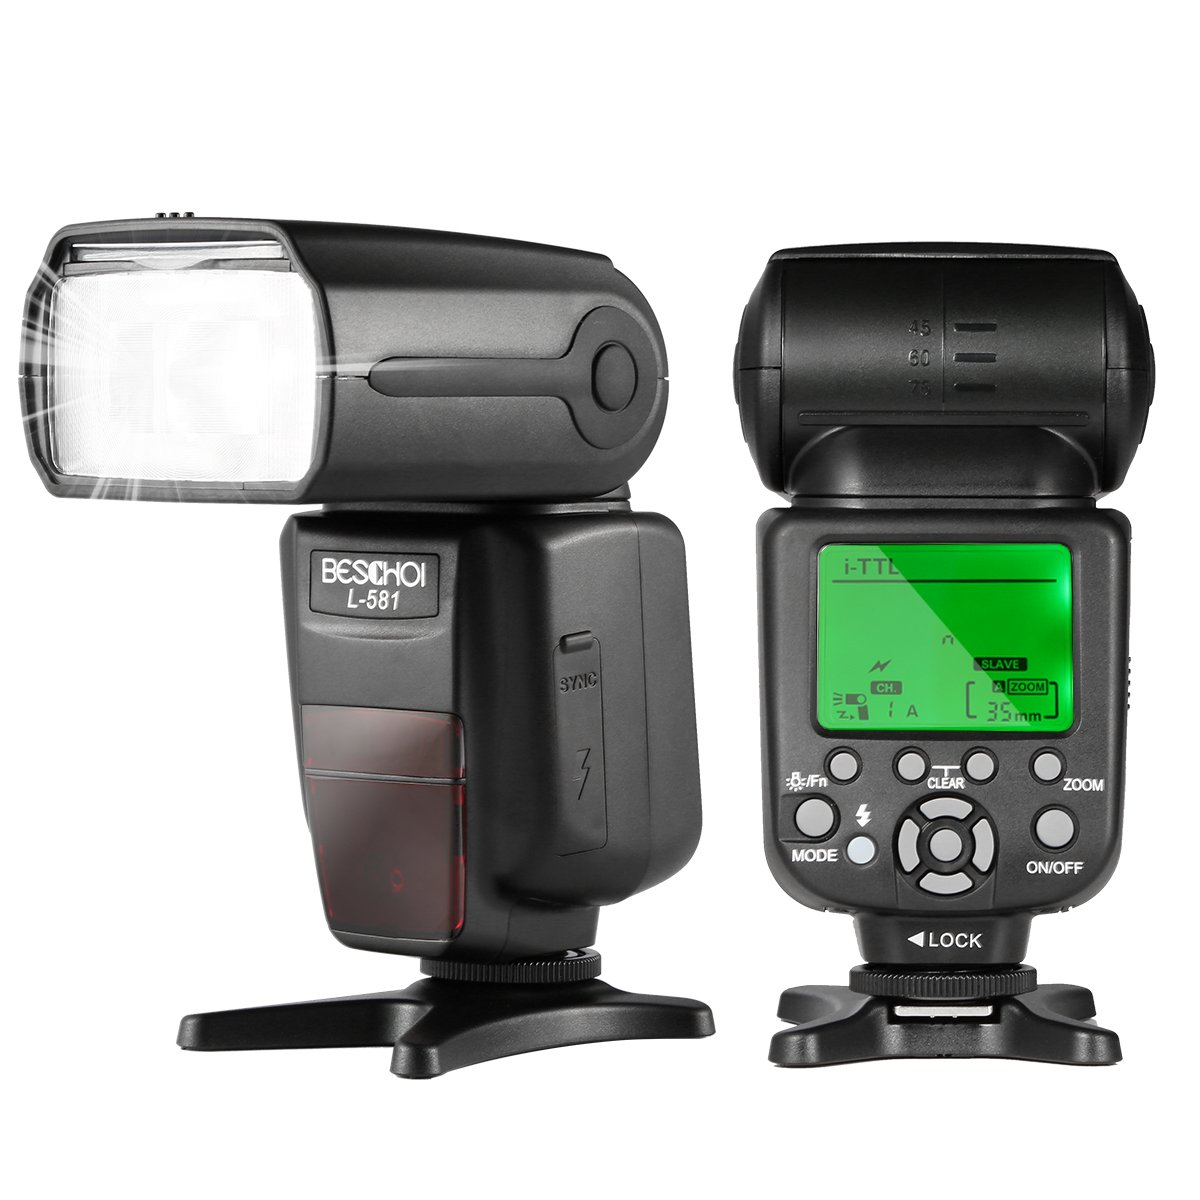 Beschoi I-TTL Speedlite Flash Professional Camera Flash with Master / Slave Wireless Control, High Speed Sync for Nikon DSLR Camera